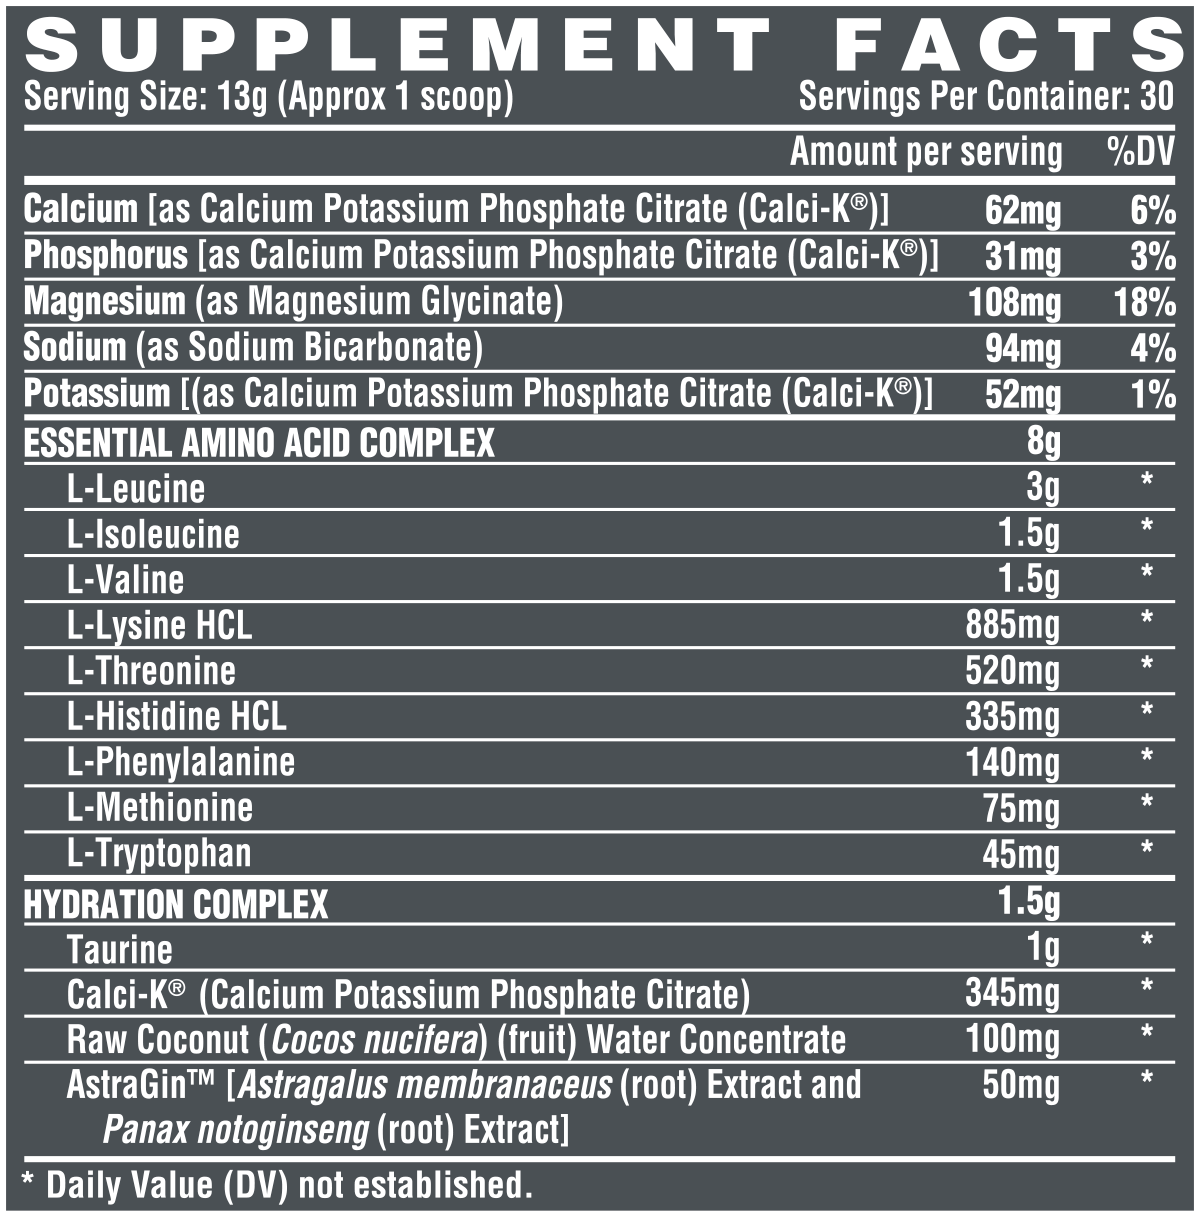 eaa-warrior-supp-facts-new.png